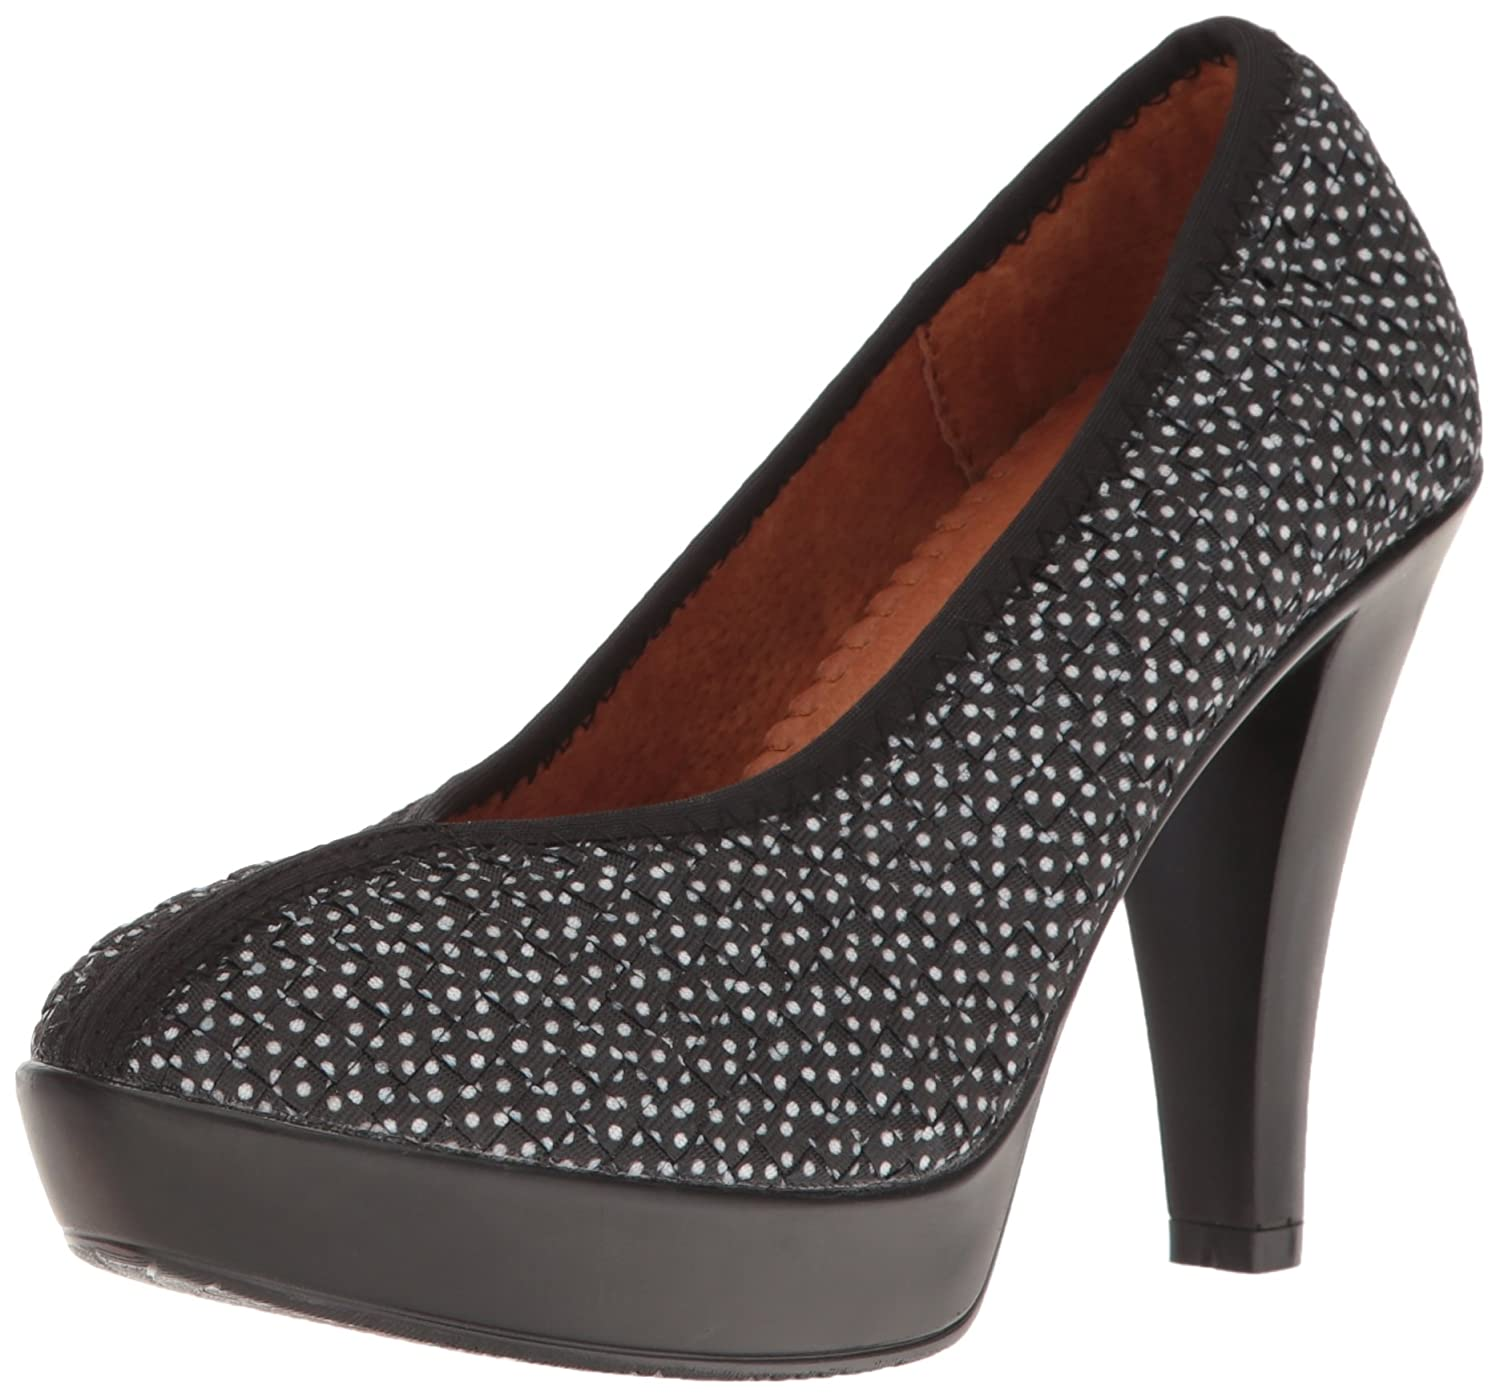 Bernie Mev Women's Legend Dress Pump B01NAN3AV1 41 M EU / 10.5 B(M) US|Black Polkadot